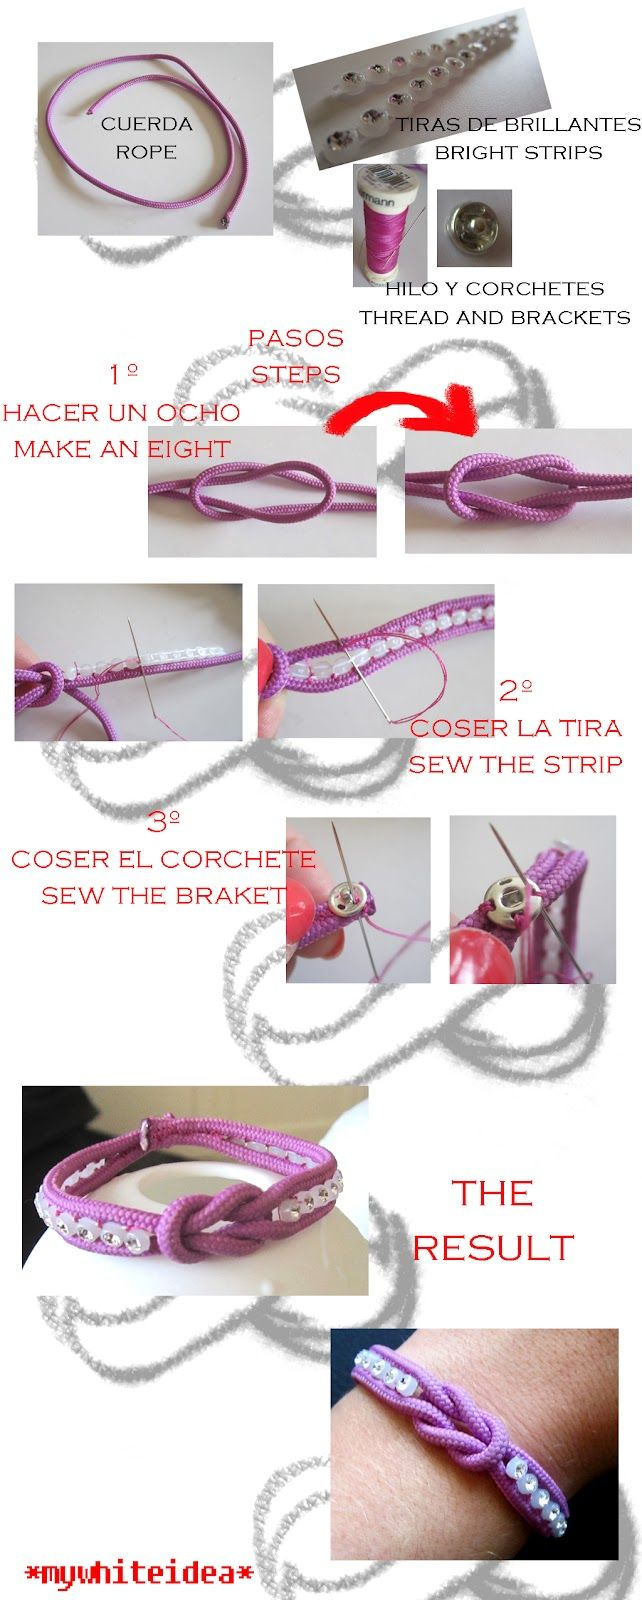 best images about diy jewelry on pinterest beads homemade and